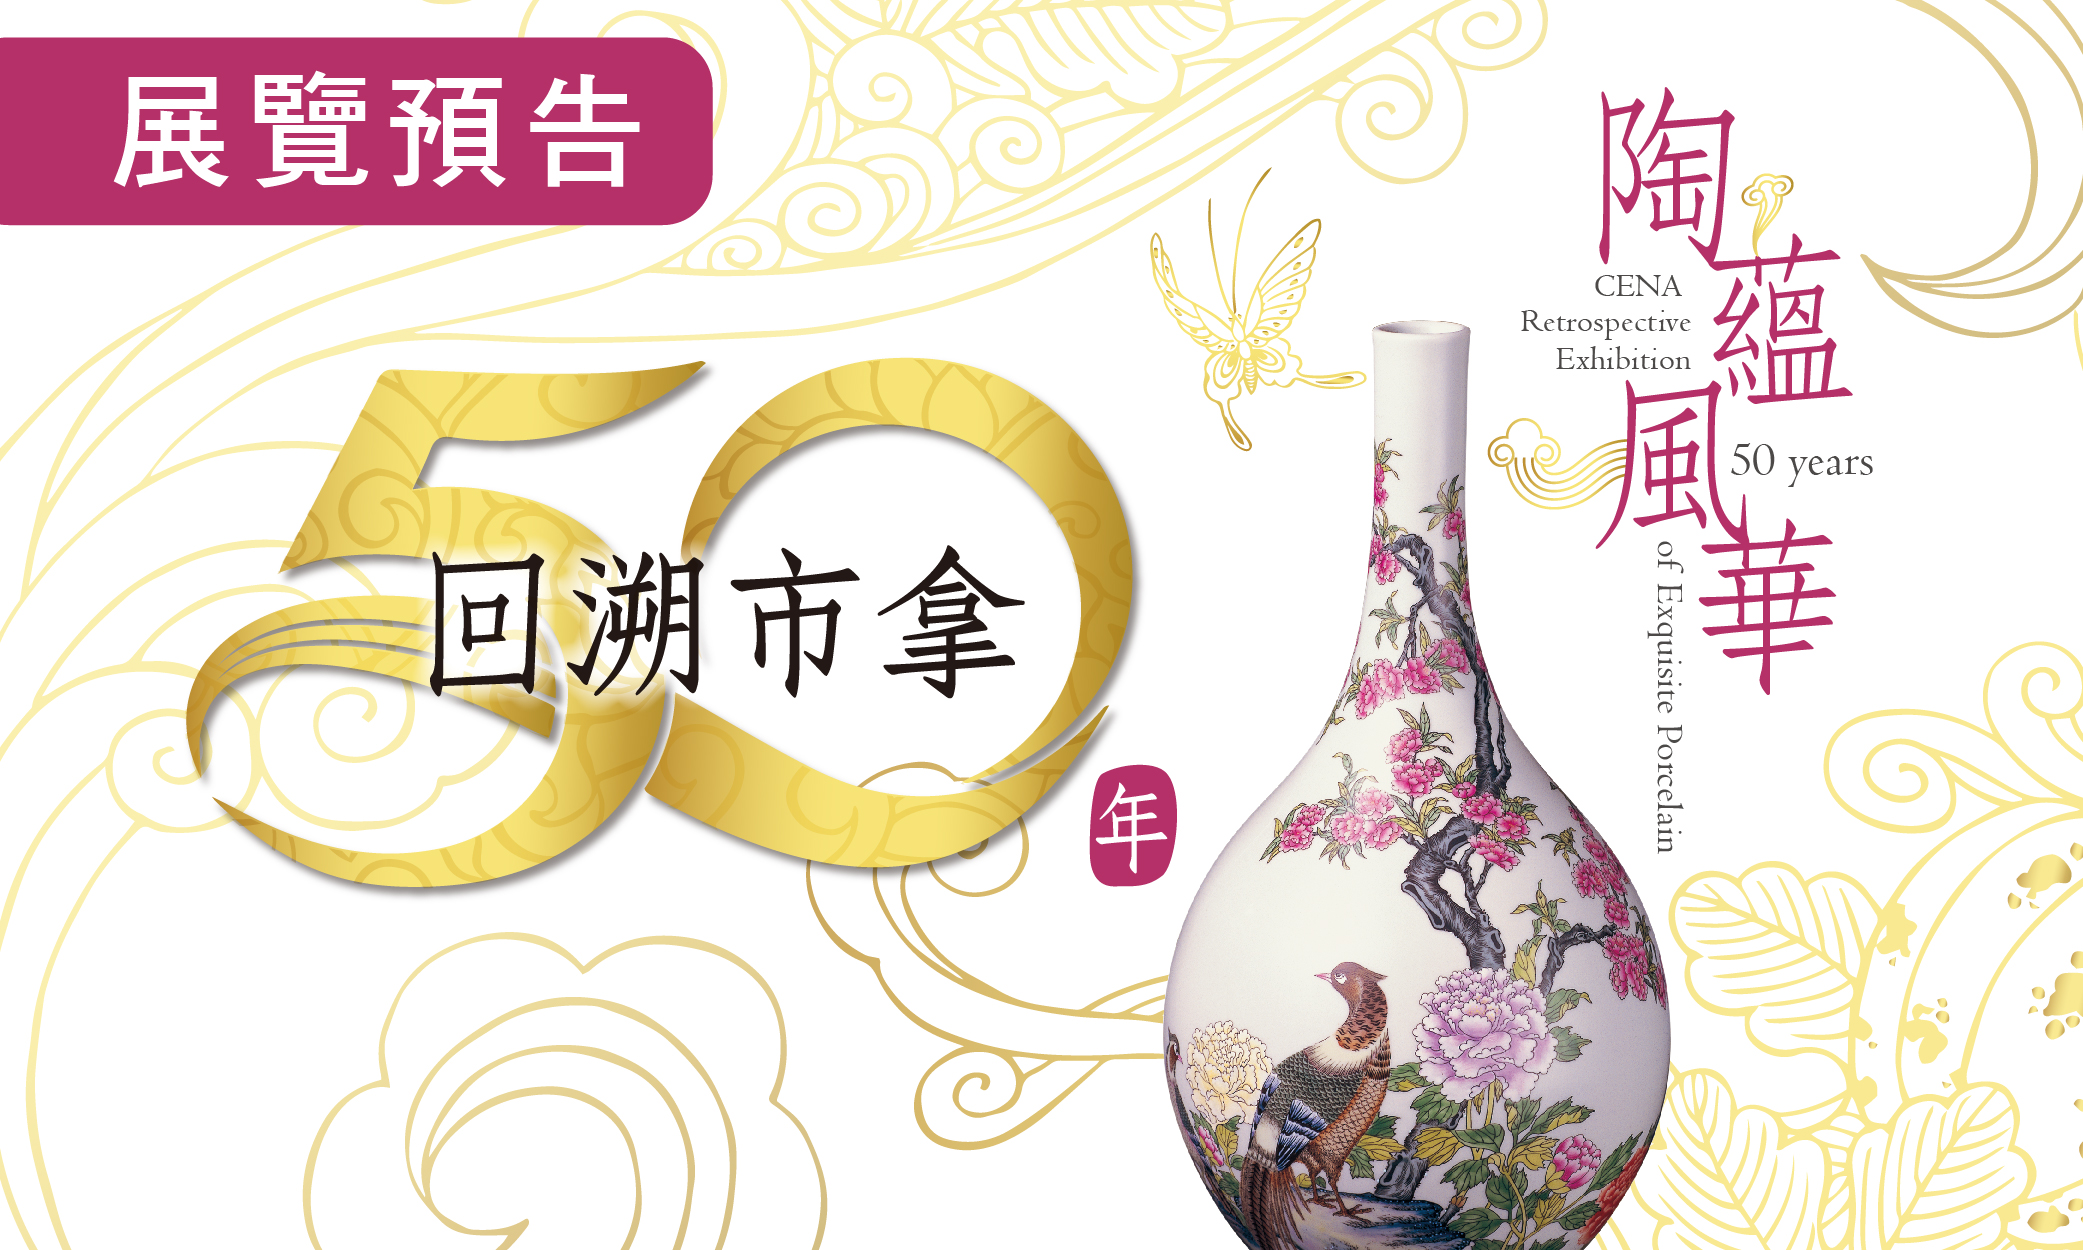 Cena Retrospective Exhibition : 50 years of Exquisite Porcelain